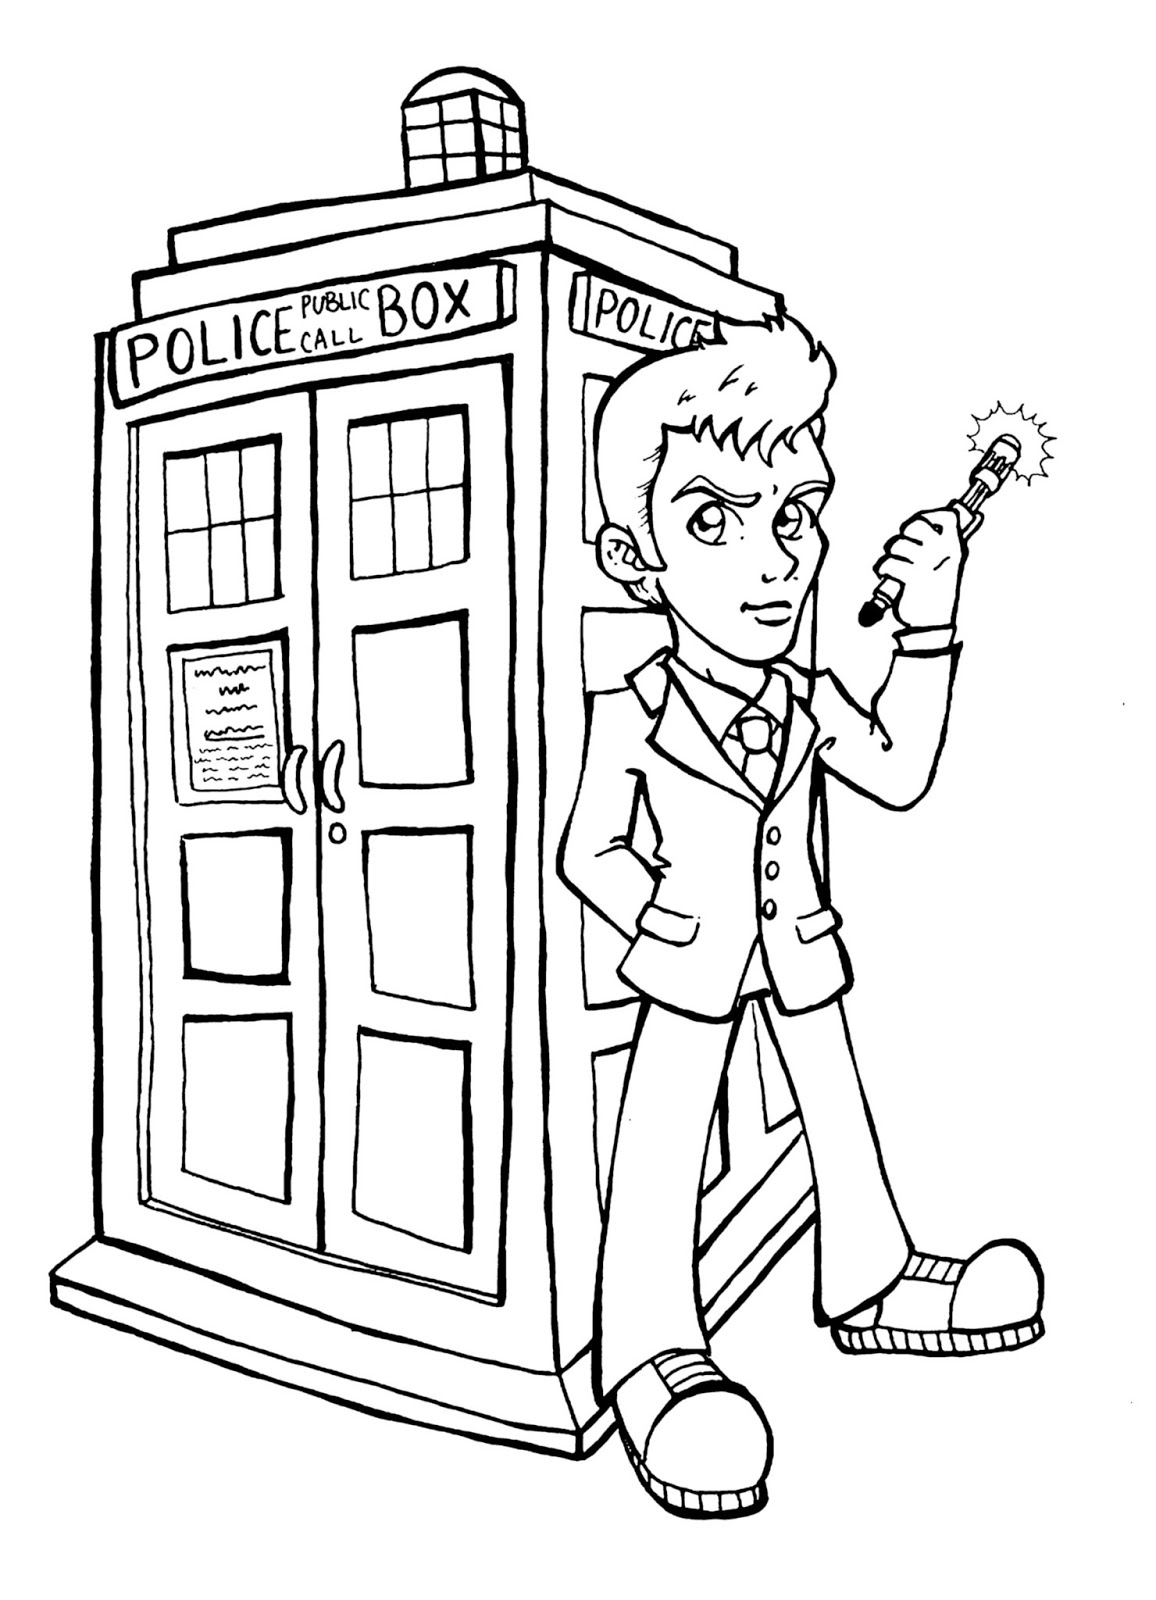 tardis coloring pages - photo#15